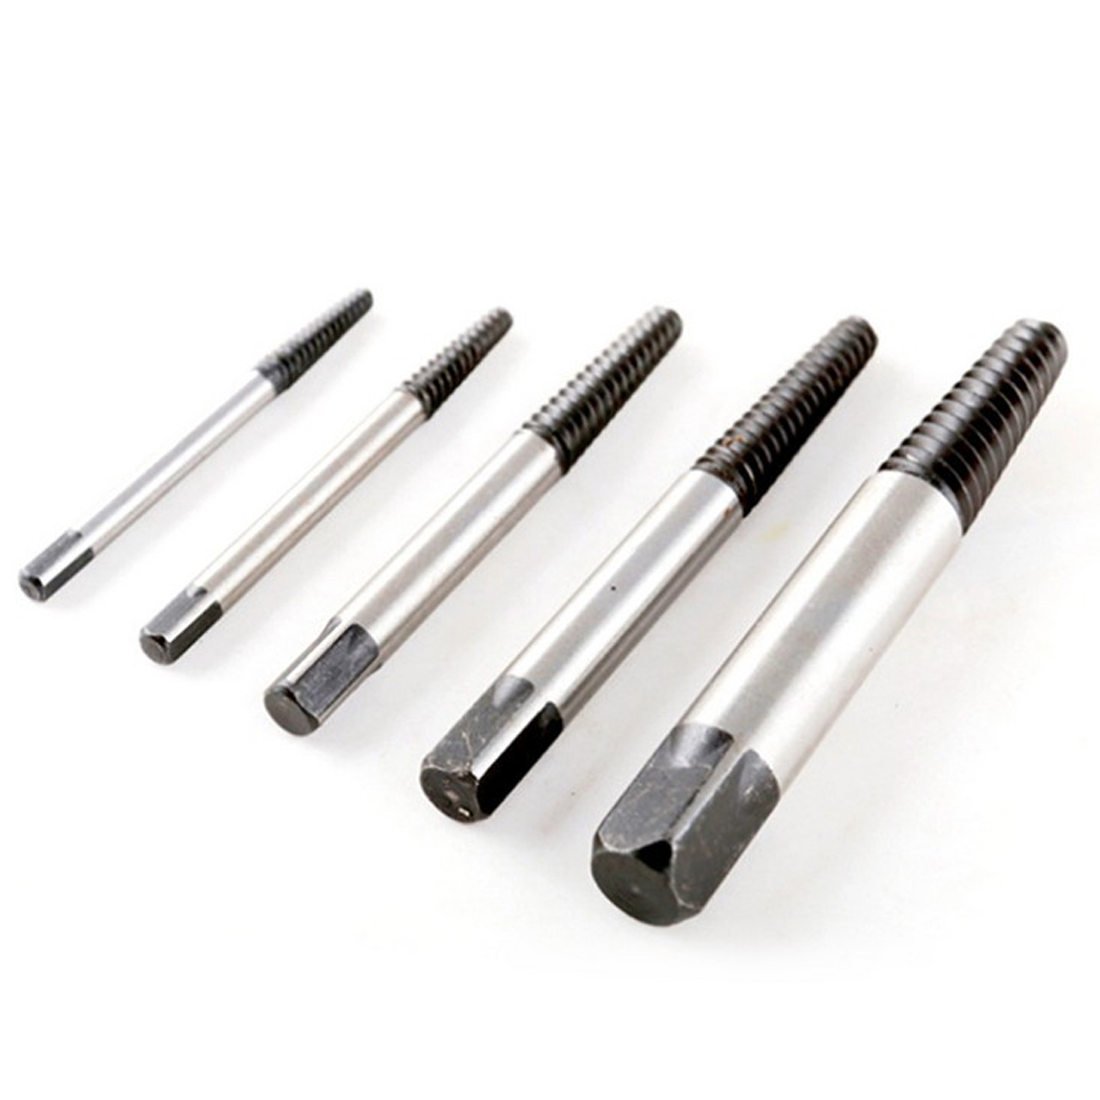 Broken Speed Out Damaged Screw Extractor 5pcs carbon steel 3-18mm Drill Bit Guide Set broken screw extractor moving